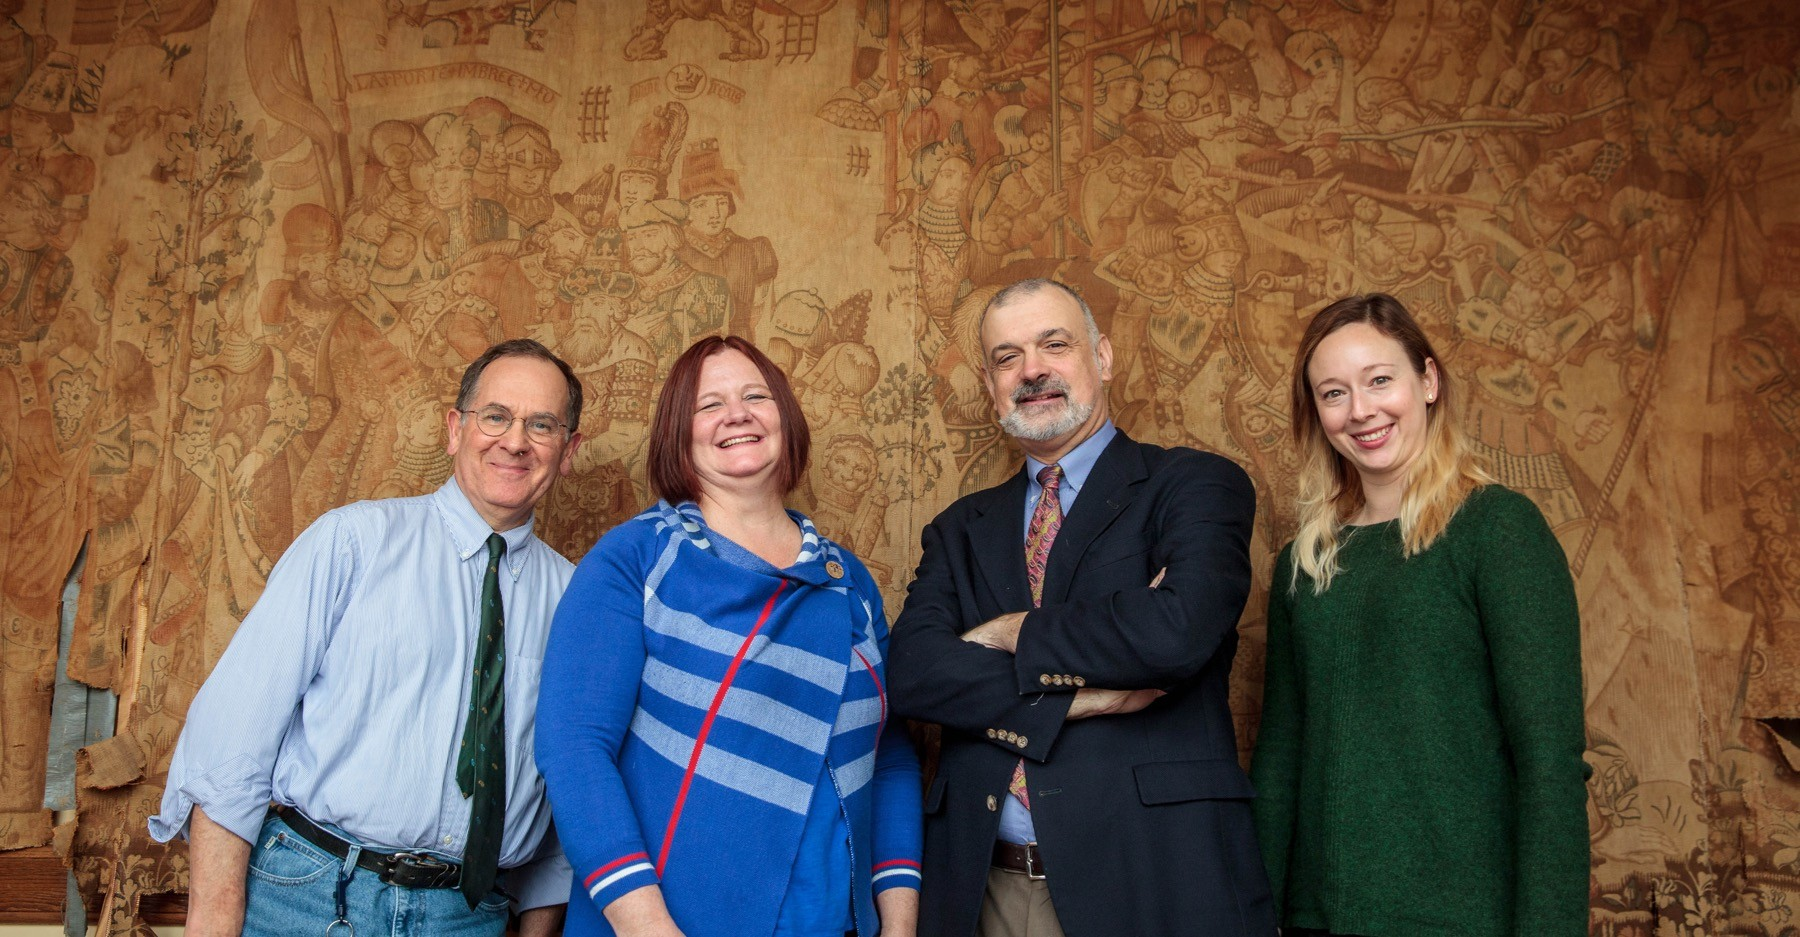 The faculty group leading the study of the tapestry includes (from left to right): Art History Professor Greg Clark, Theatre Professor Jennifer Matthews, Classics Professor Chris McDonough, and Humanities Teaching Professor Stephanie Batkie. Not pictured: Chemistry Professor Rob Bachman. Photo by Buck Butler